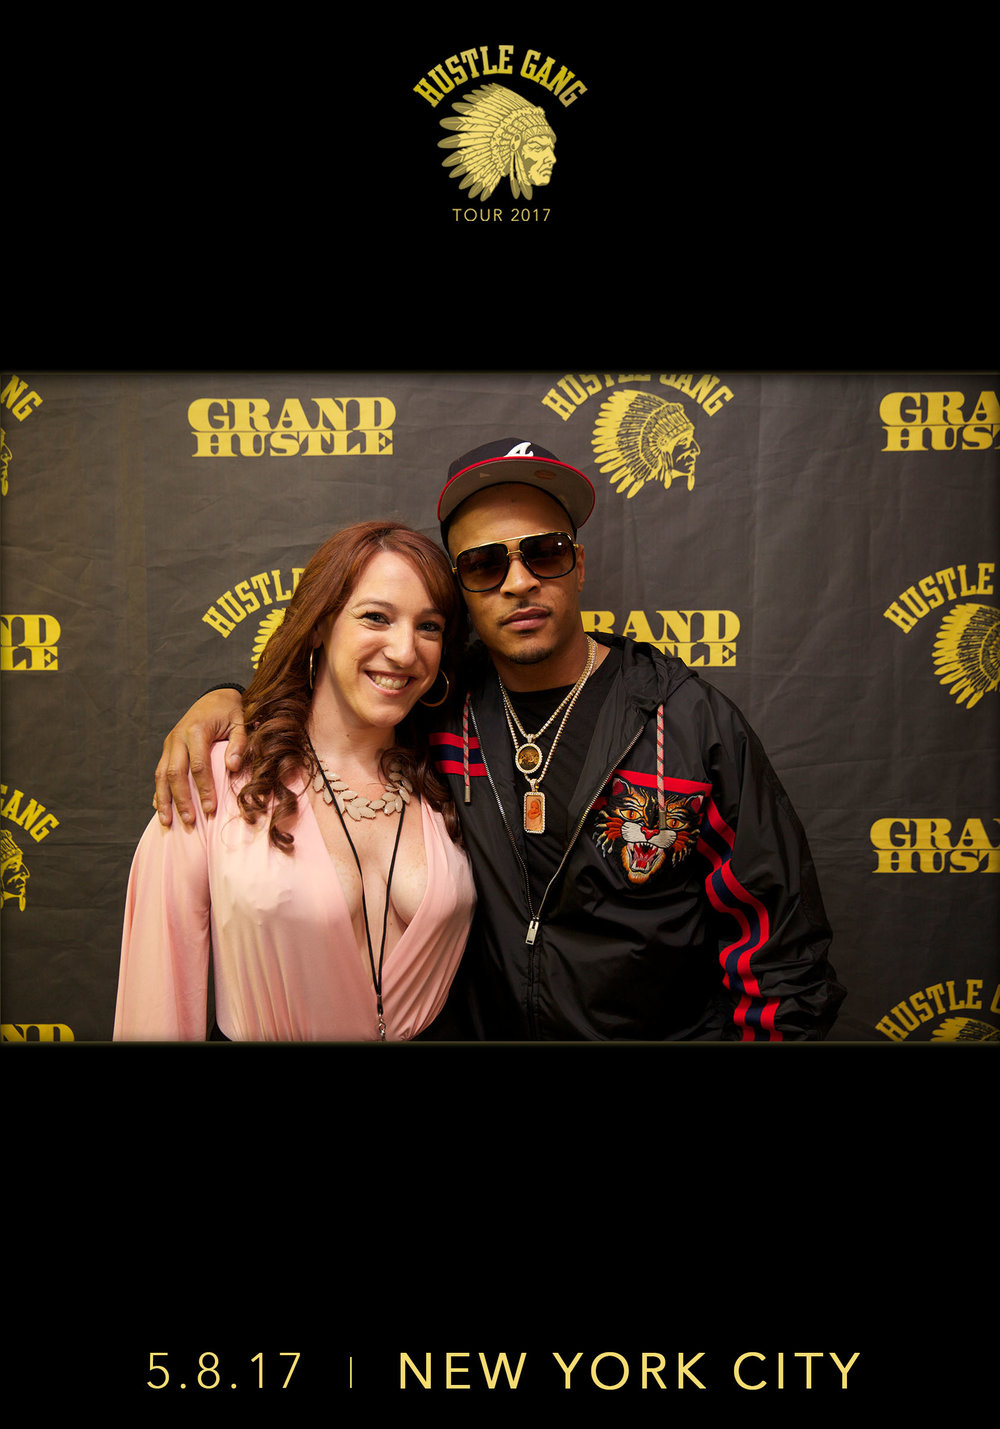 New York Ny Meet And Greet Photos Trap Music Museum And Escape